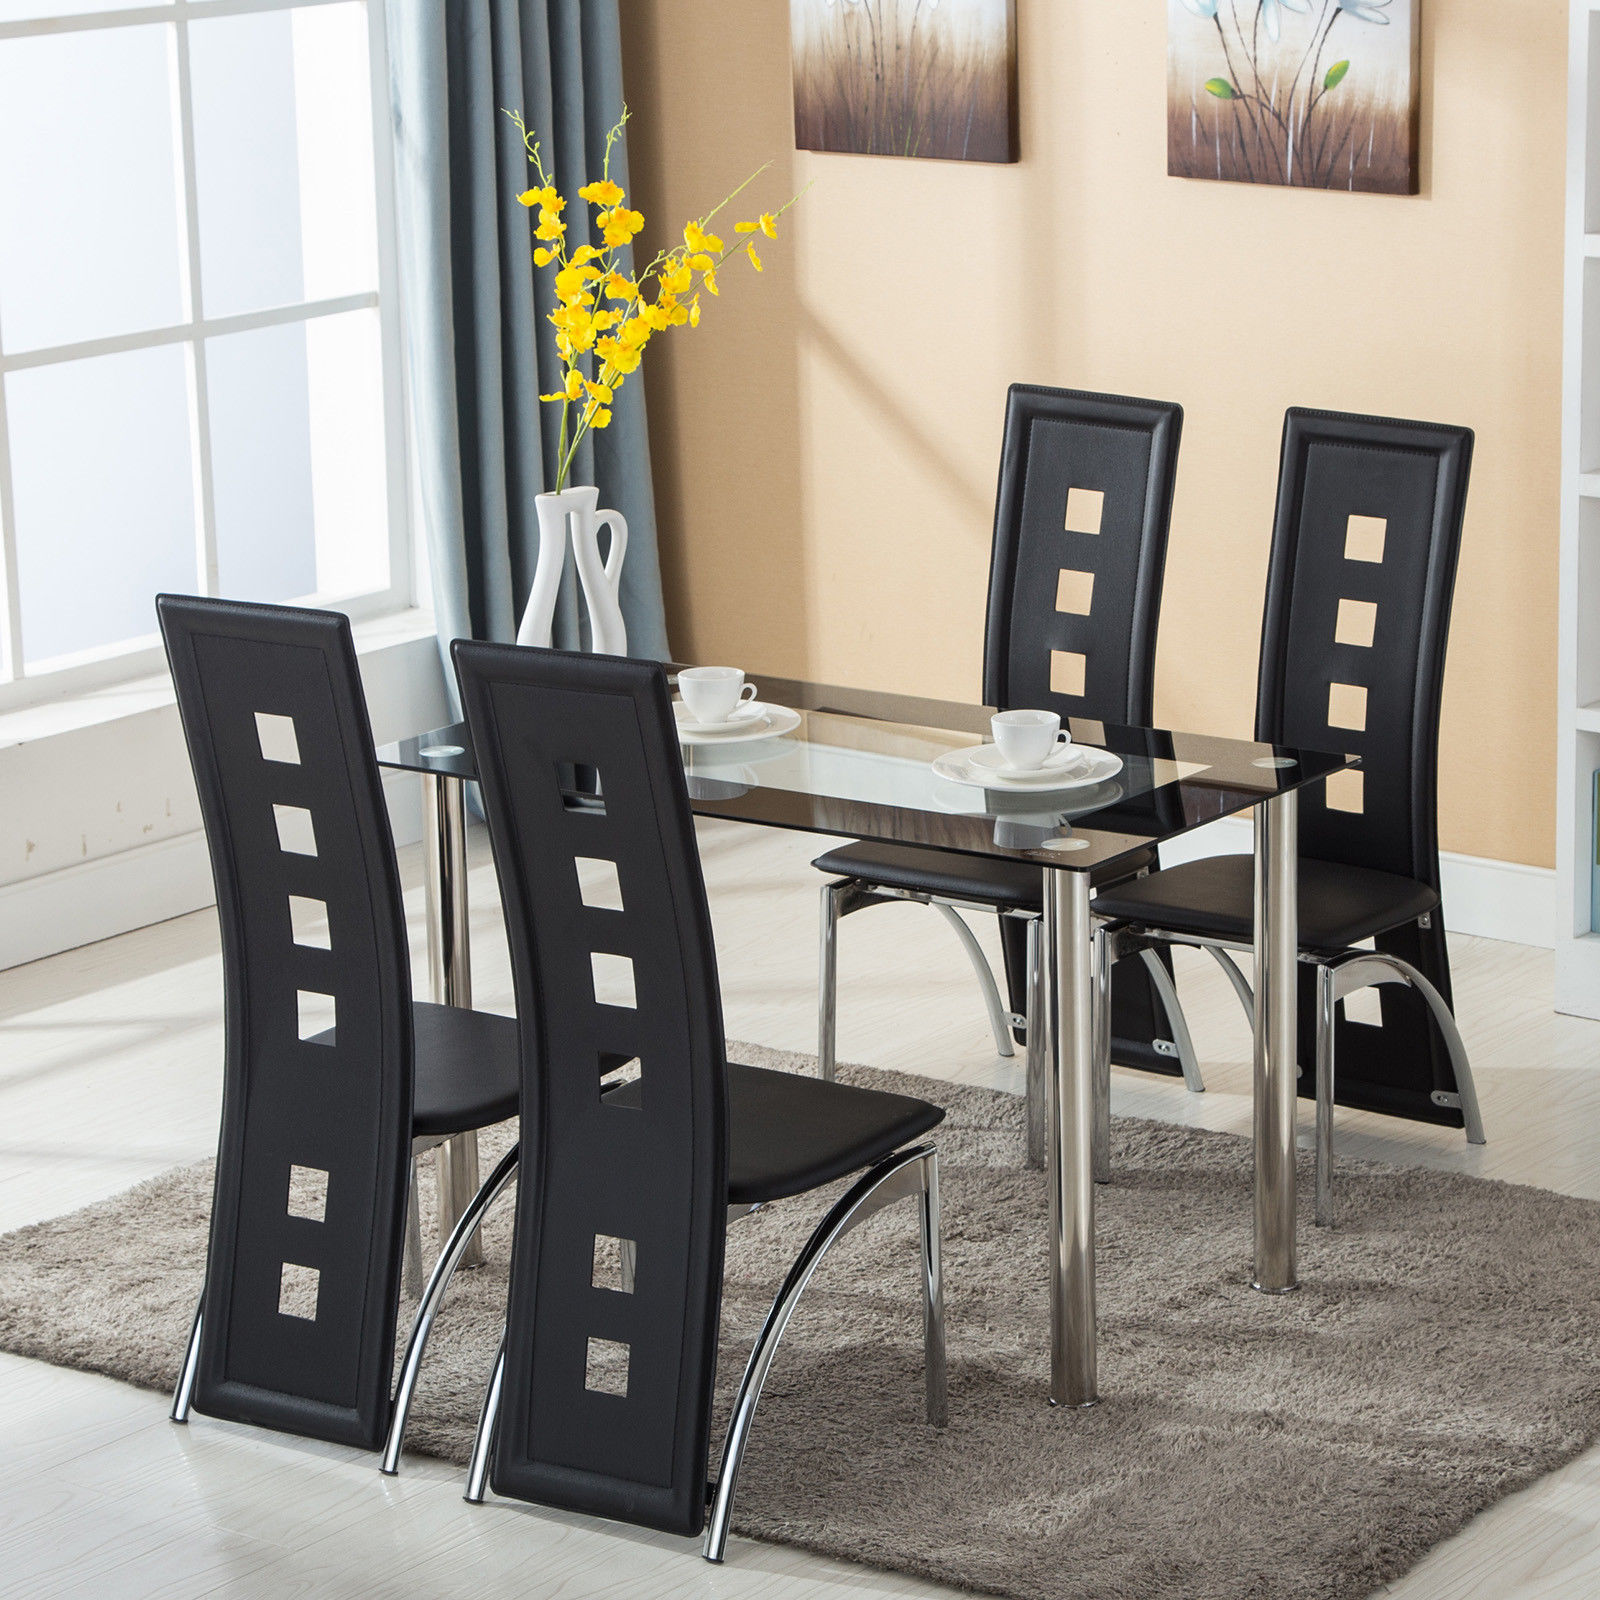 Saddle Brown Round Table And 4 Kitchen Chairs 5 Piece: 5 Piece Dining Set Glass Top Table And 4 Leather Chair For